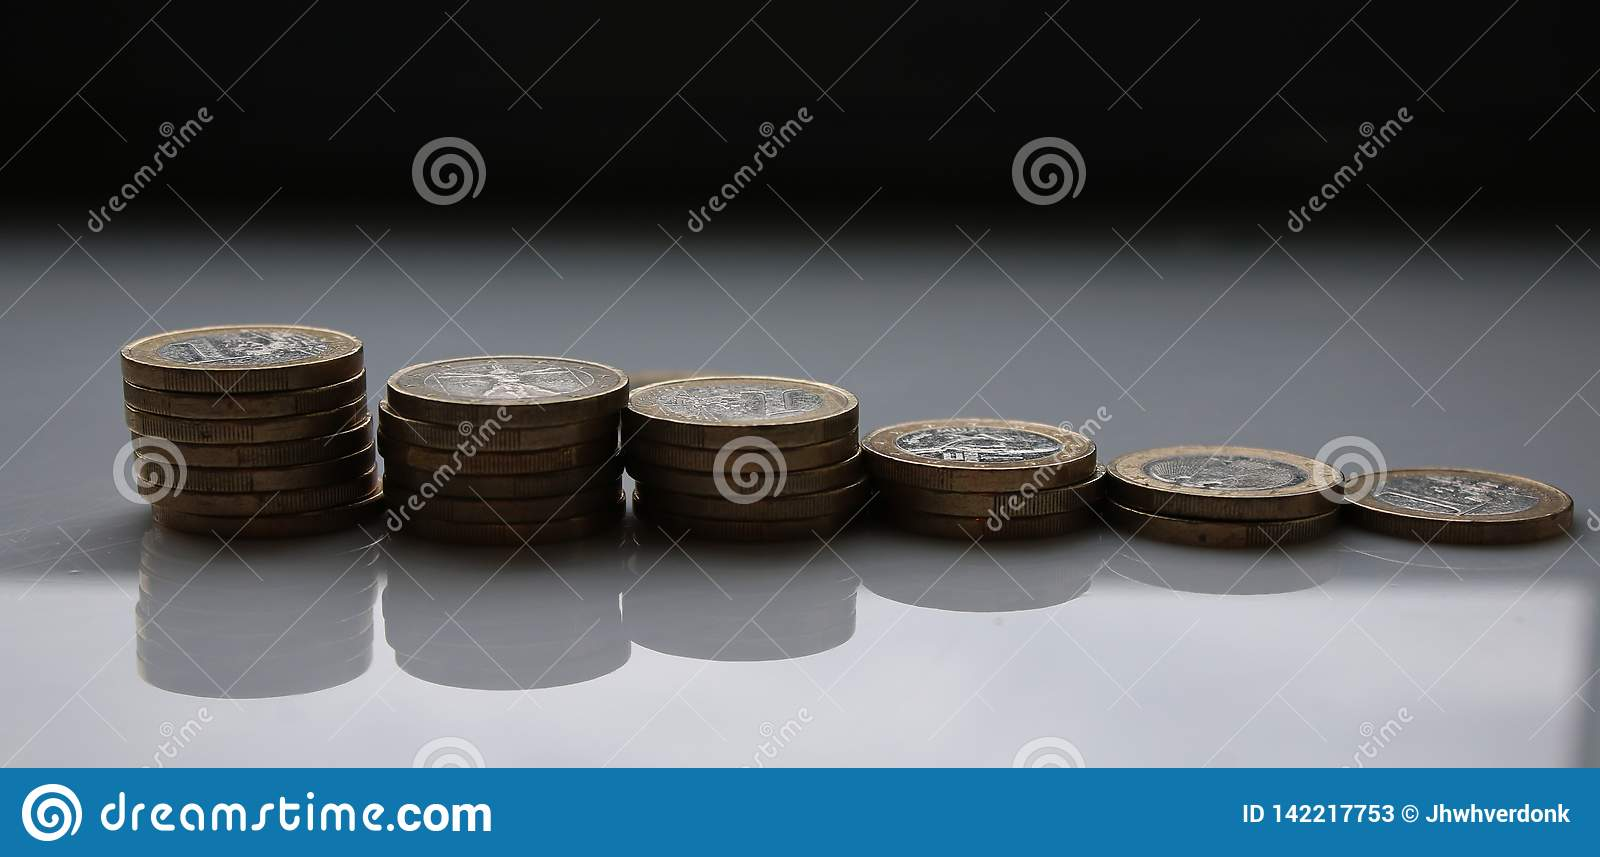 Euros stacked in piles with a white background and shadows visible